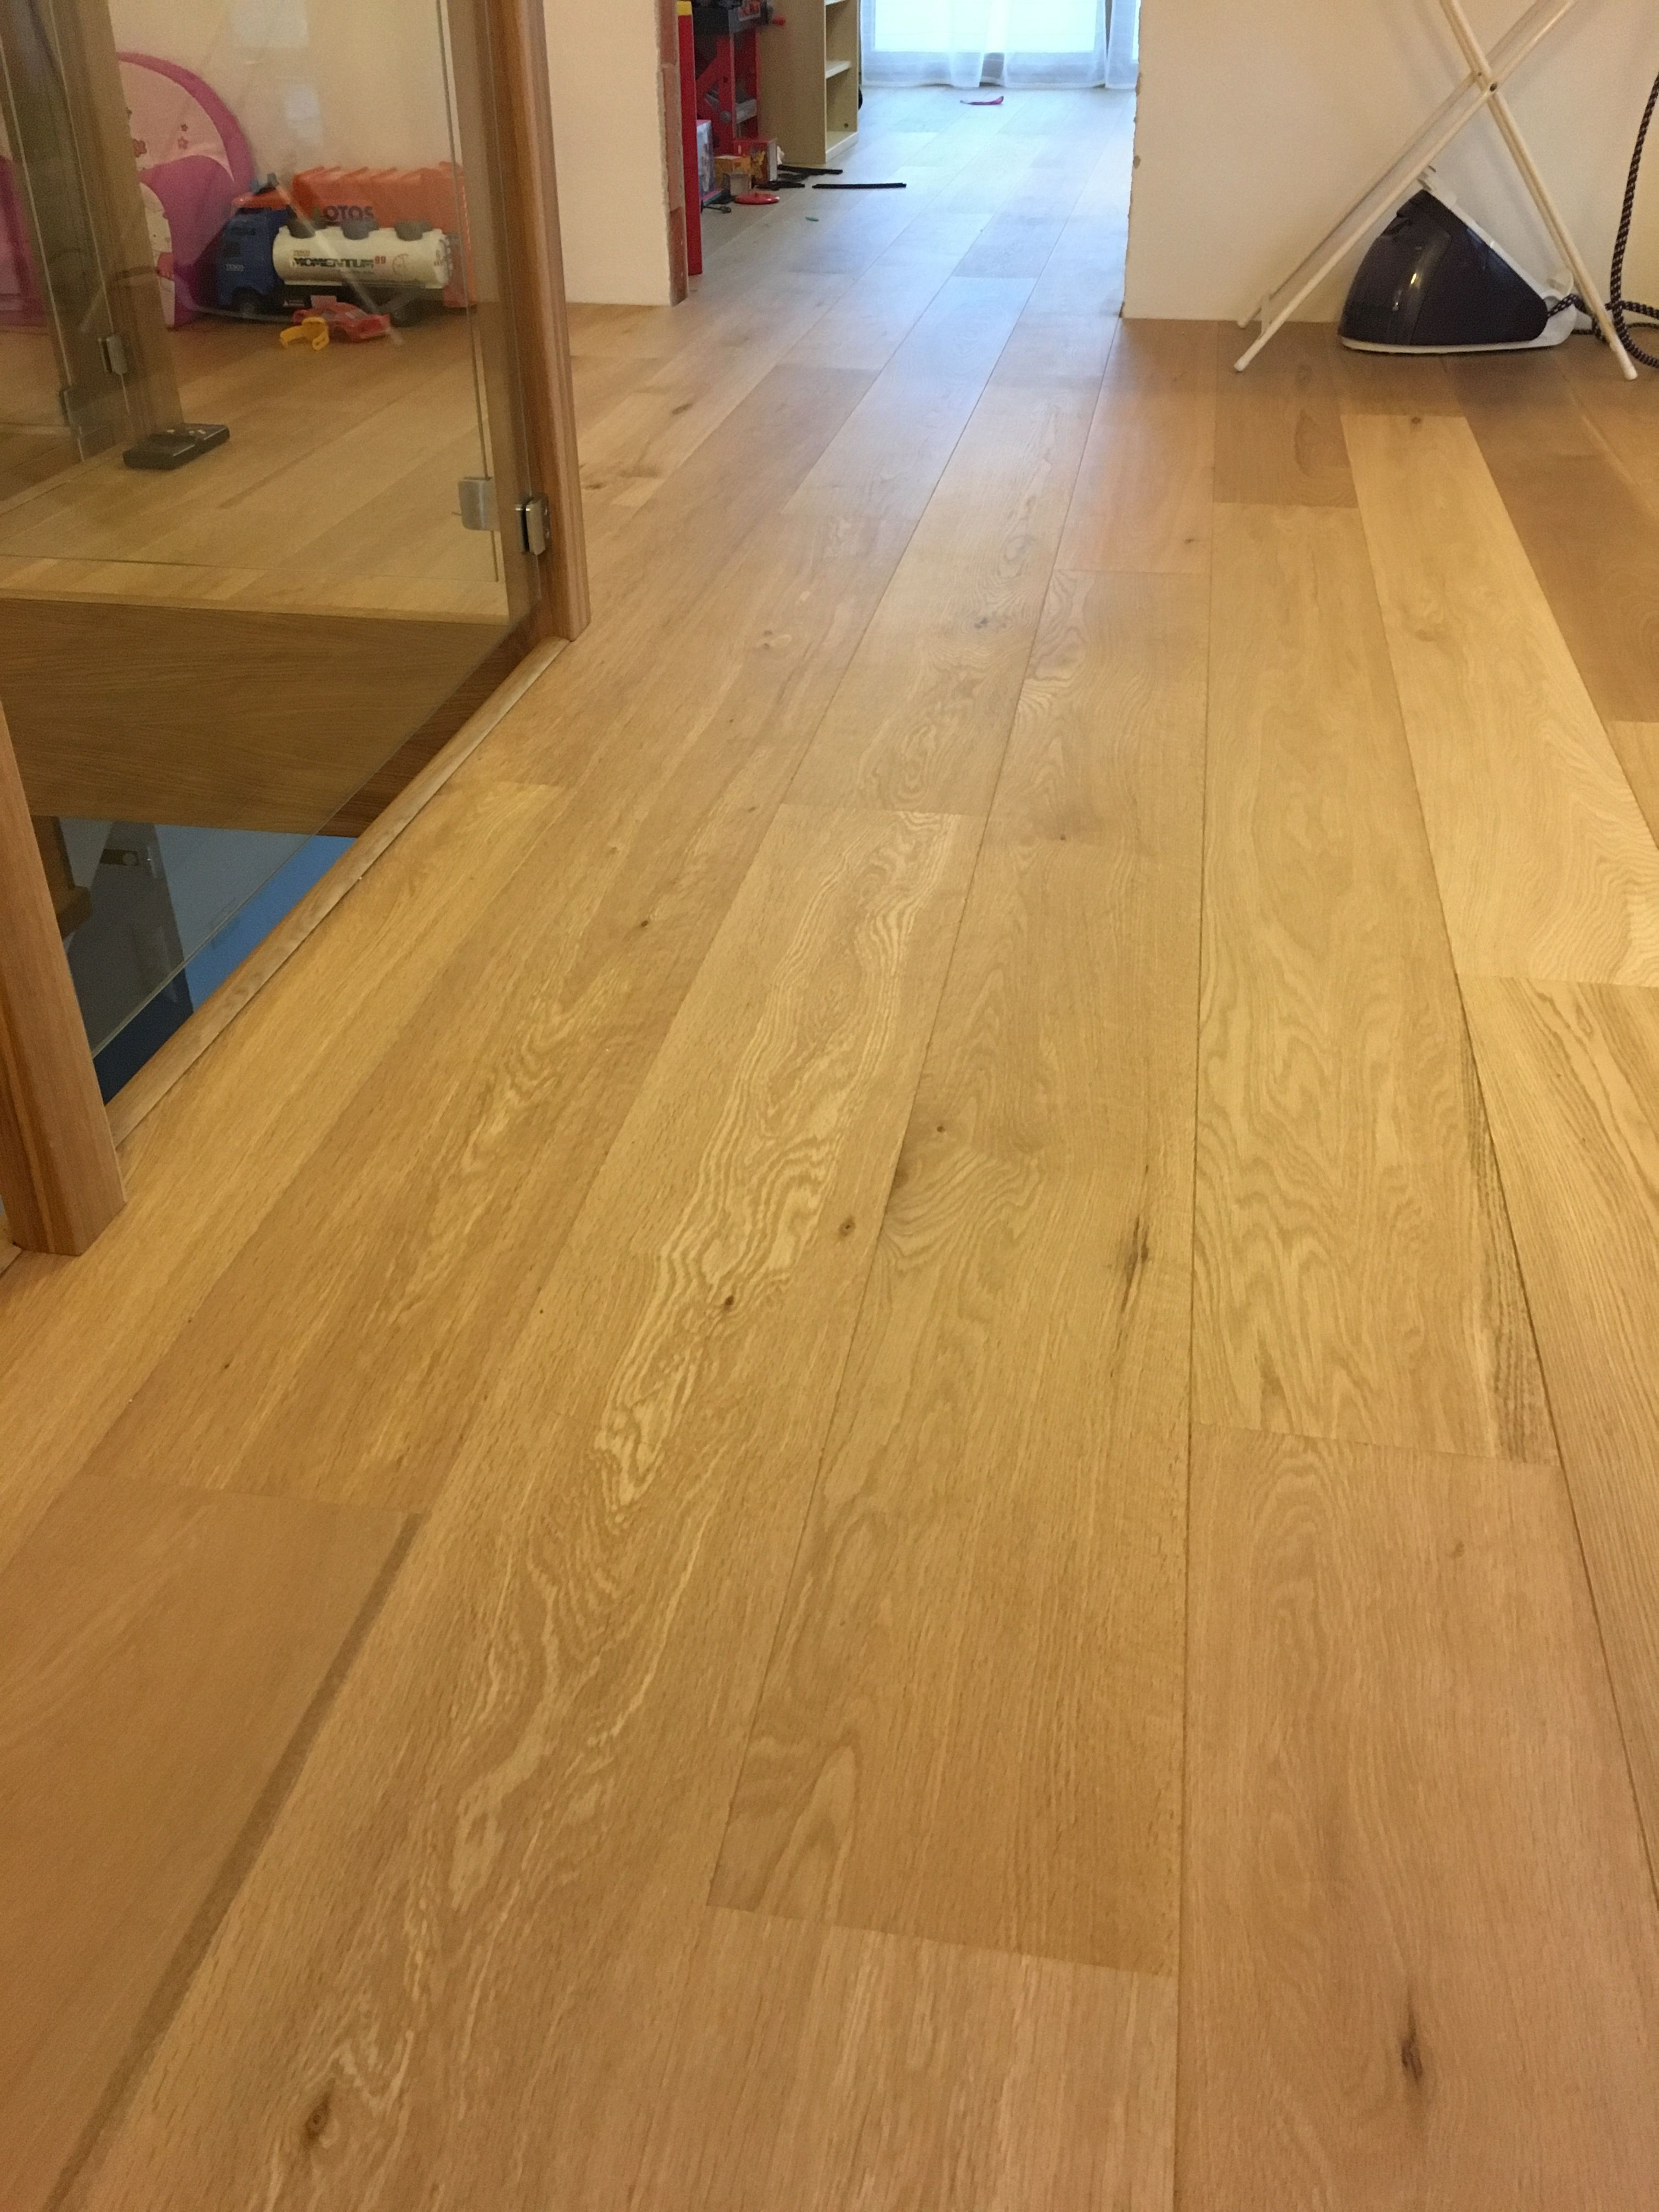 Hardwood Floor Color Options Of How to Stain Wood Floors Naturalny Dub Od Belgickaho Va½robcu Lamett with Regard to How to Stain Wood Floors Naturalny Dub Od Belgickaho Va½robcu Lamett